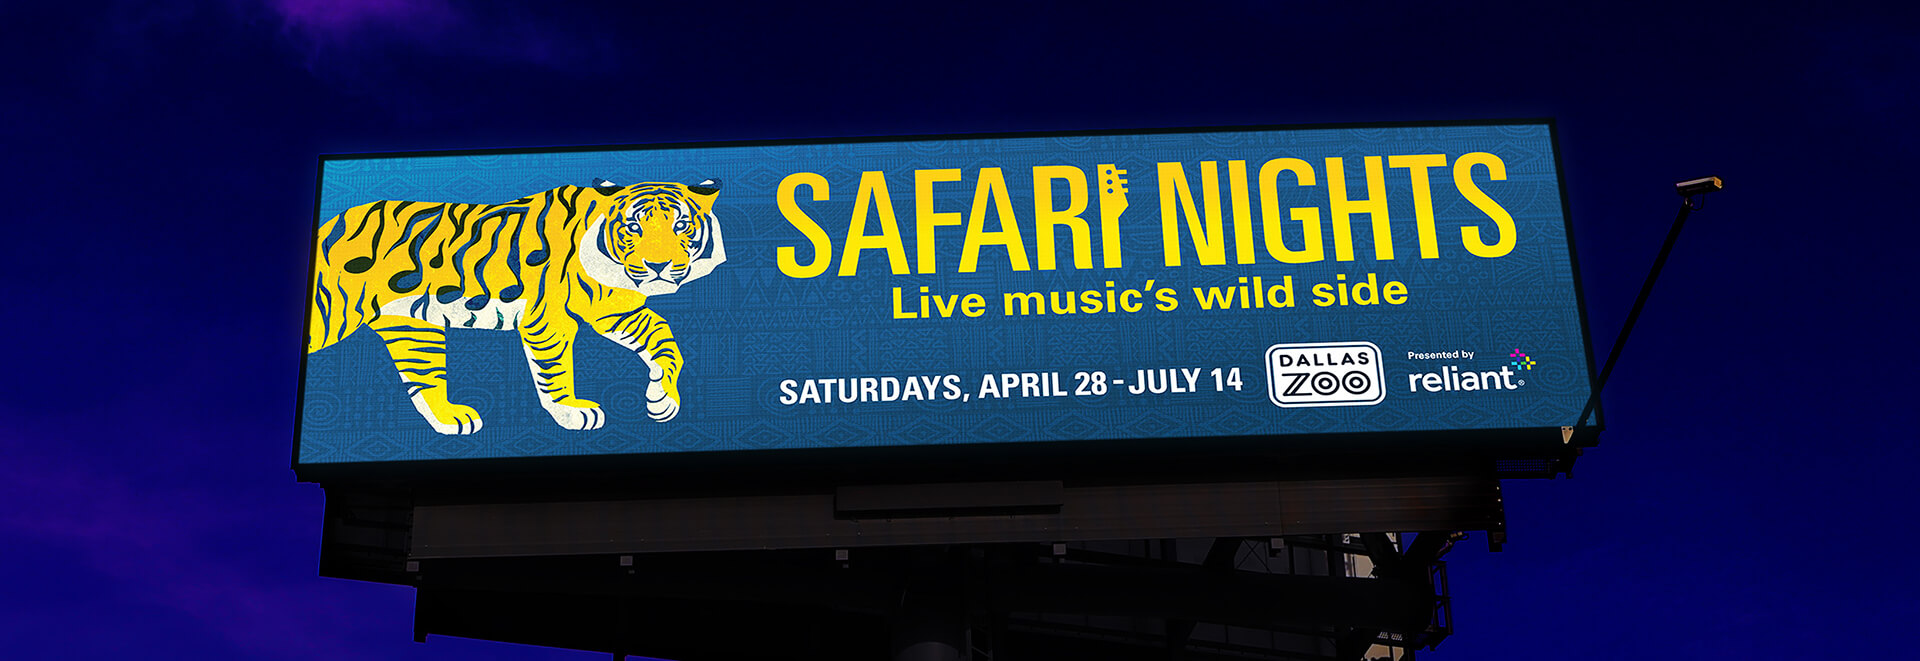 Dallas Zoo Safari Nights billboard